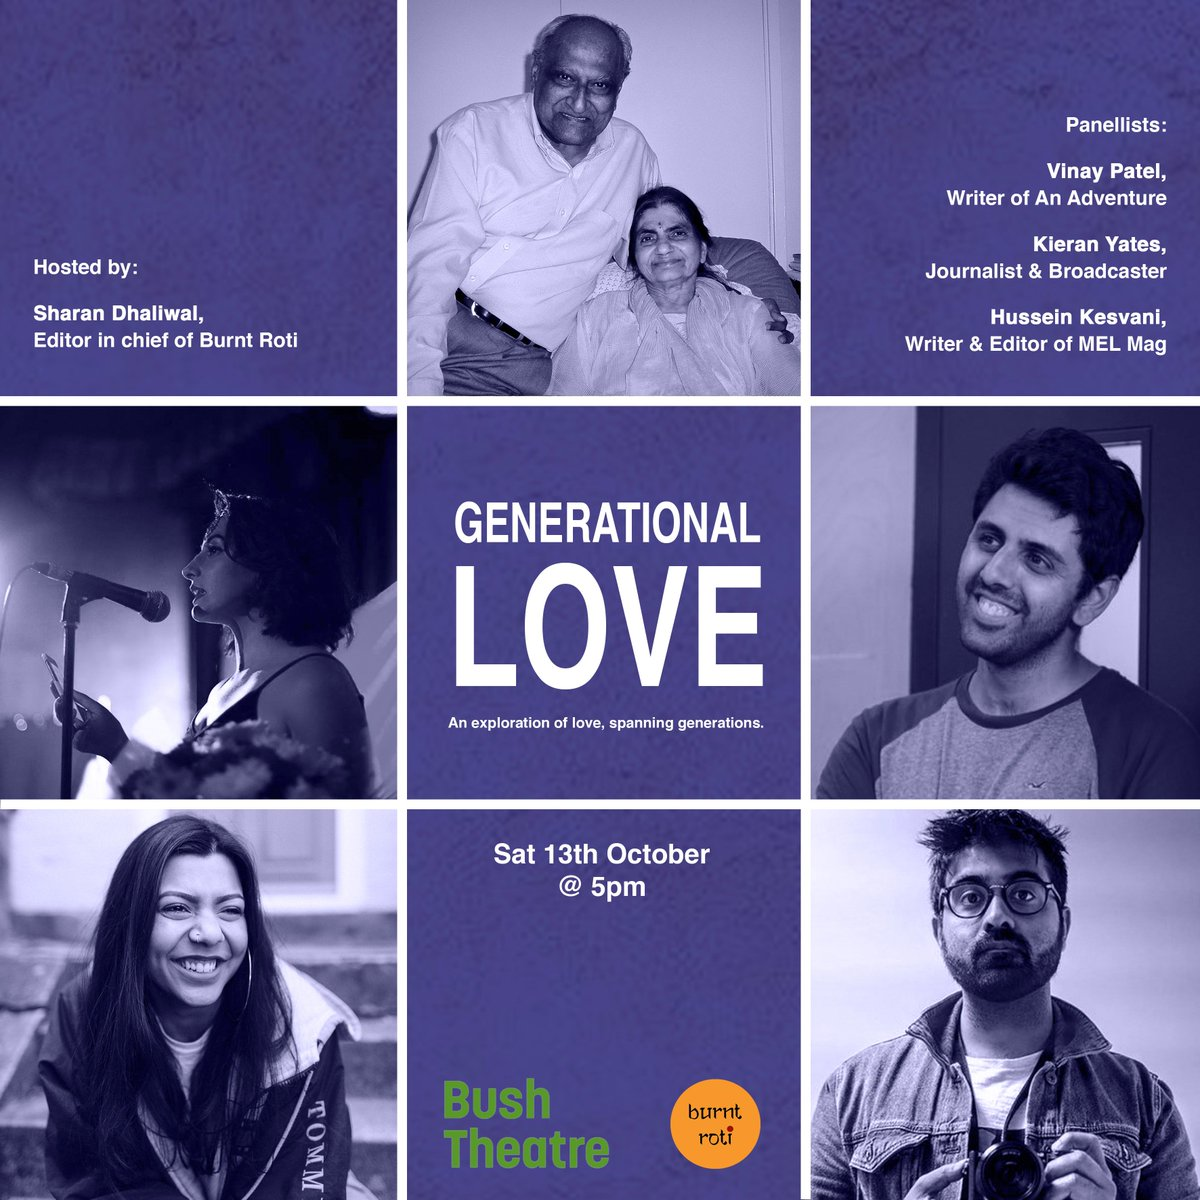 Bush Theatre - An Adventure 'Generational Love' - I chaired a panel at Bush Theatre for Vinay Patel's play 'An Adventure', discussing generational love and how it affects our ideas of romantic love now.